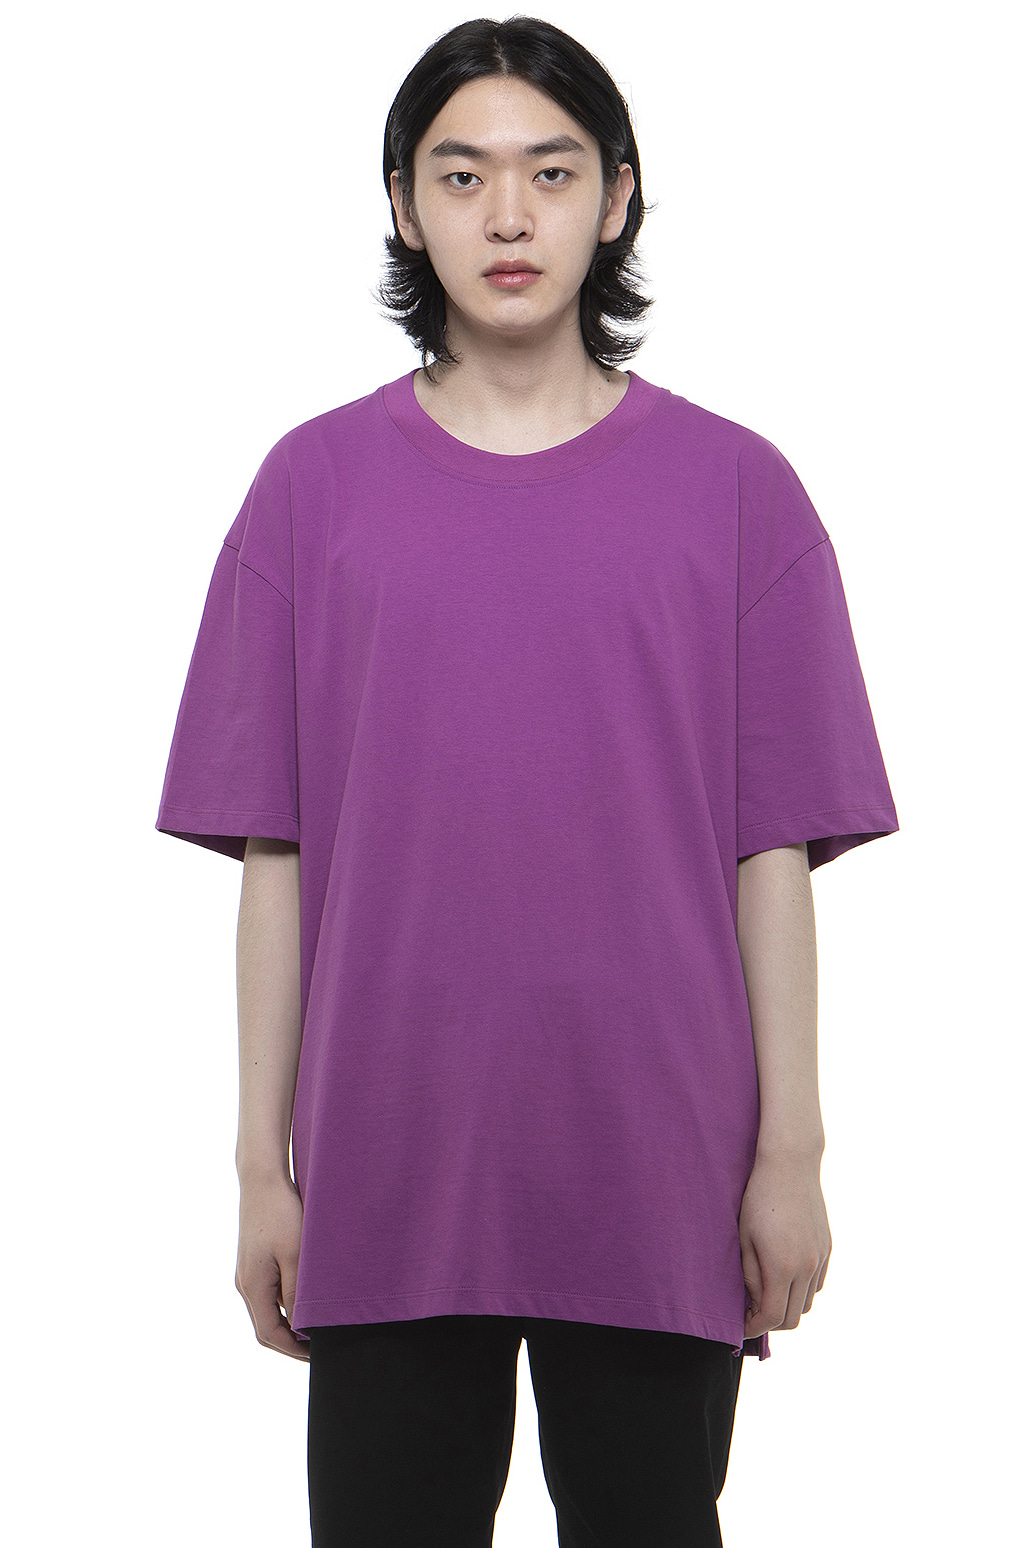 T001 / Cotton 100 Layered Purple T